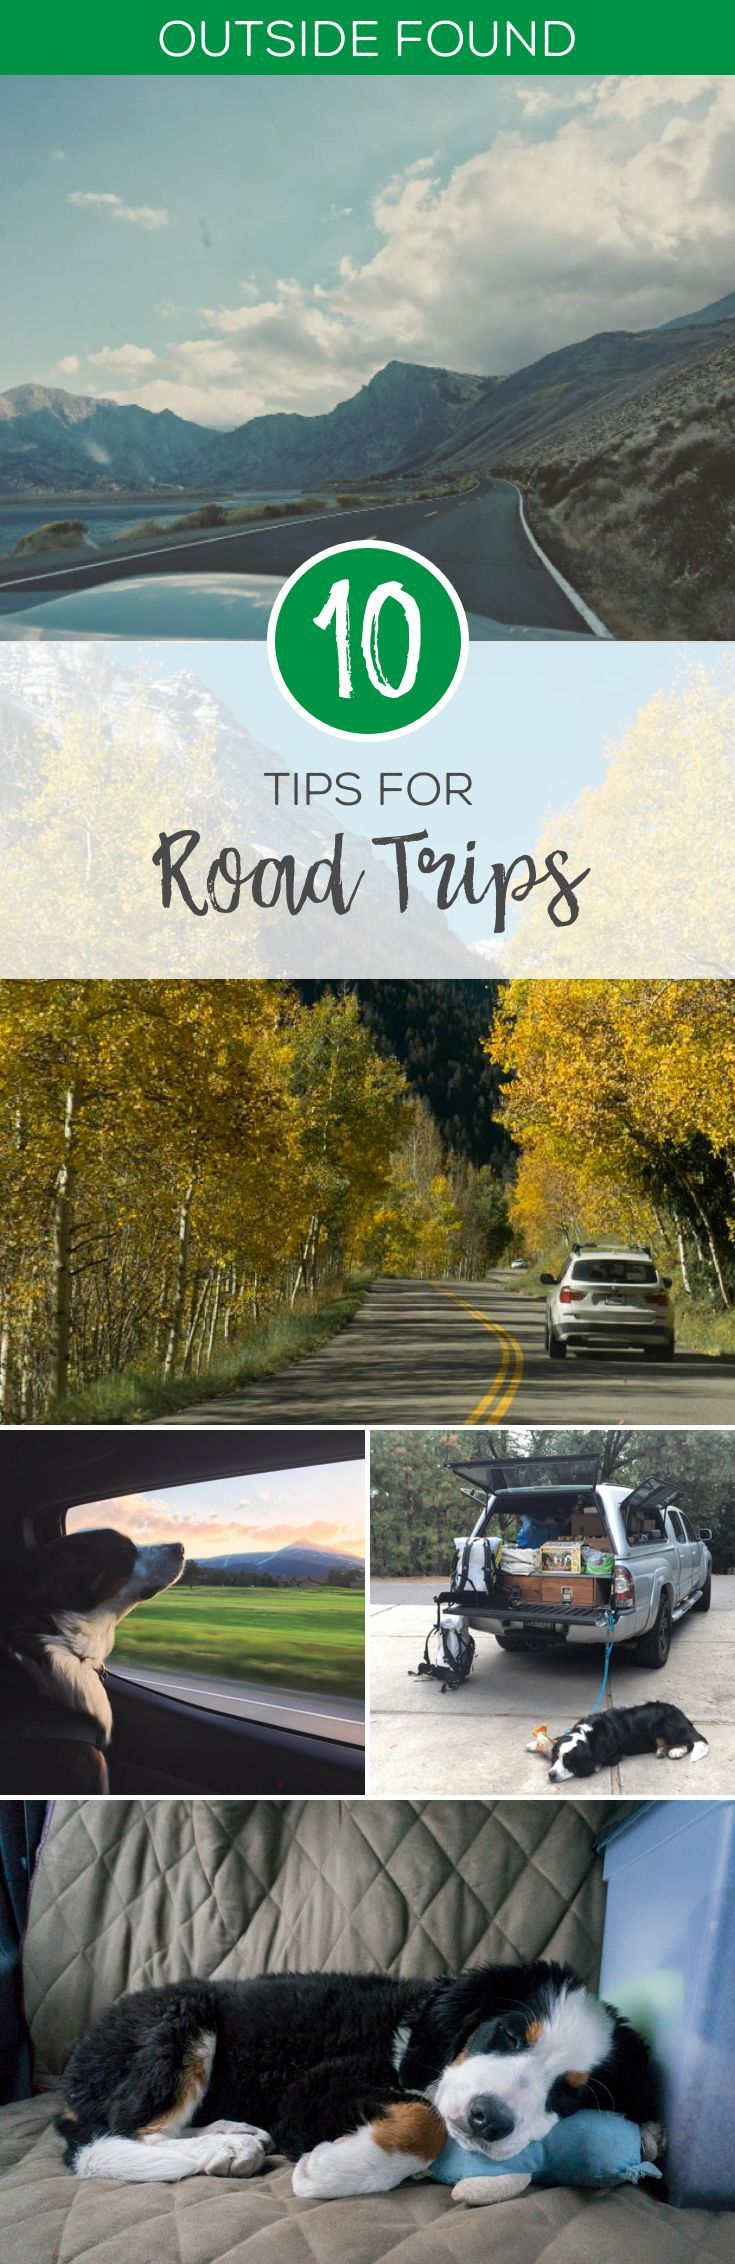 With a minimum of two cross-country road trips per year, we have our road tripping strategy down pat. Here are our favorite road trip tips and tricks, including driving strategy, podcasts to listen to, apps to download, and ways to keep your dog happy and exercised.